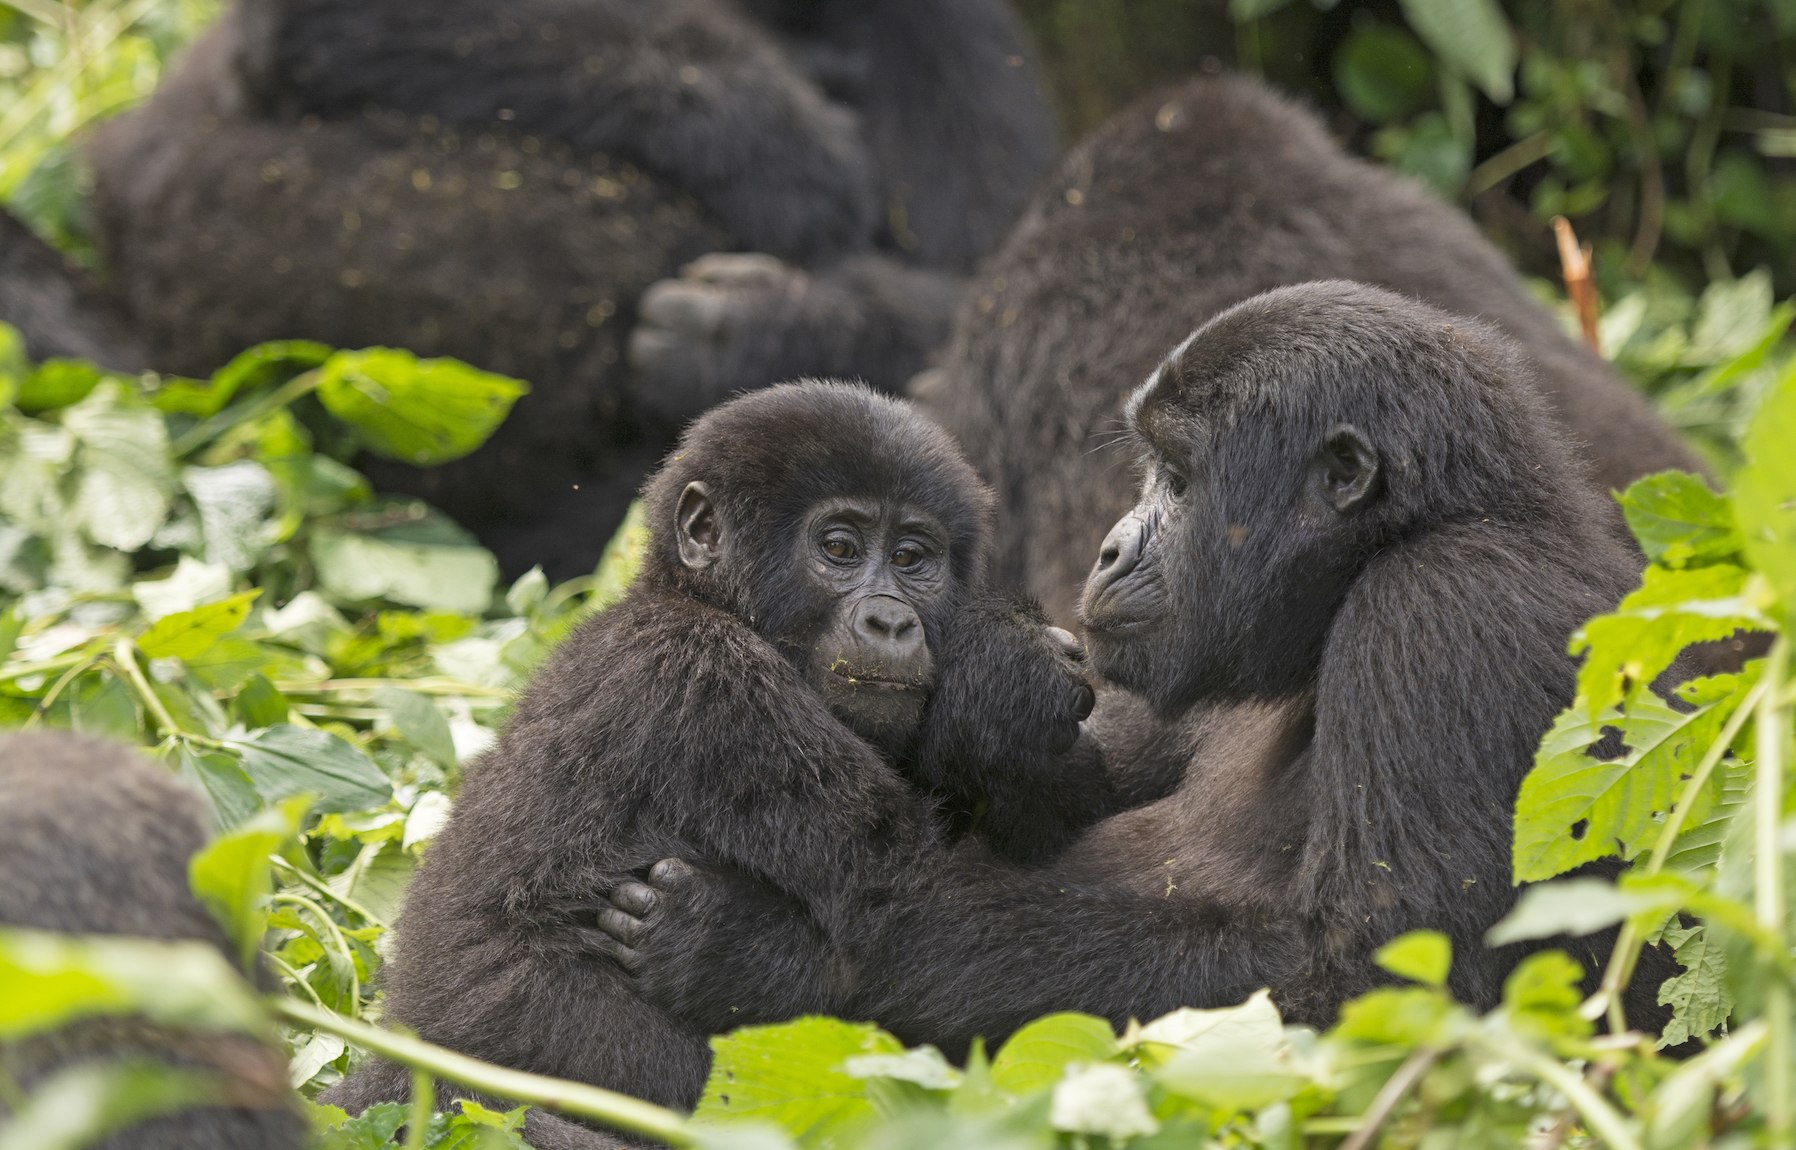 A recent survey has revealed that a population of mountain gorillas in East Africa has more than doubled in the last 30 years.